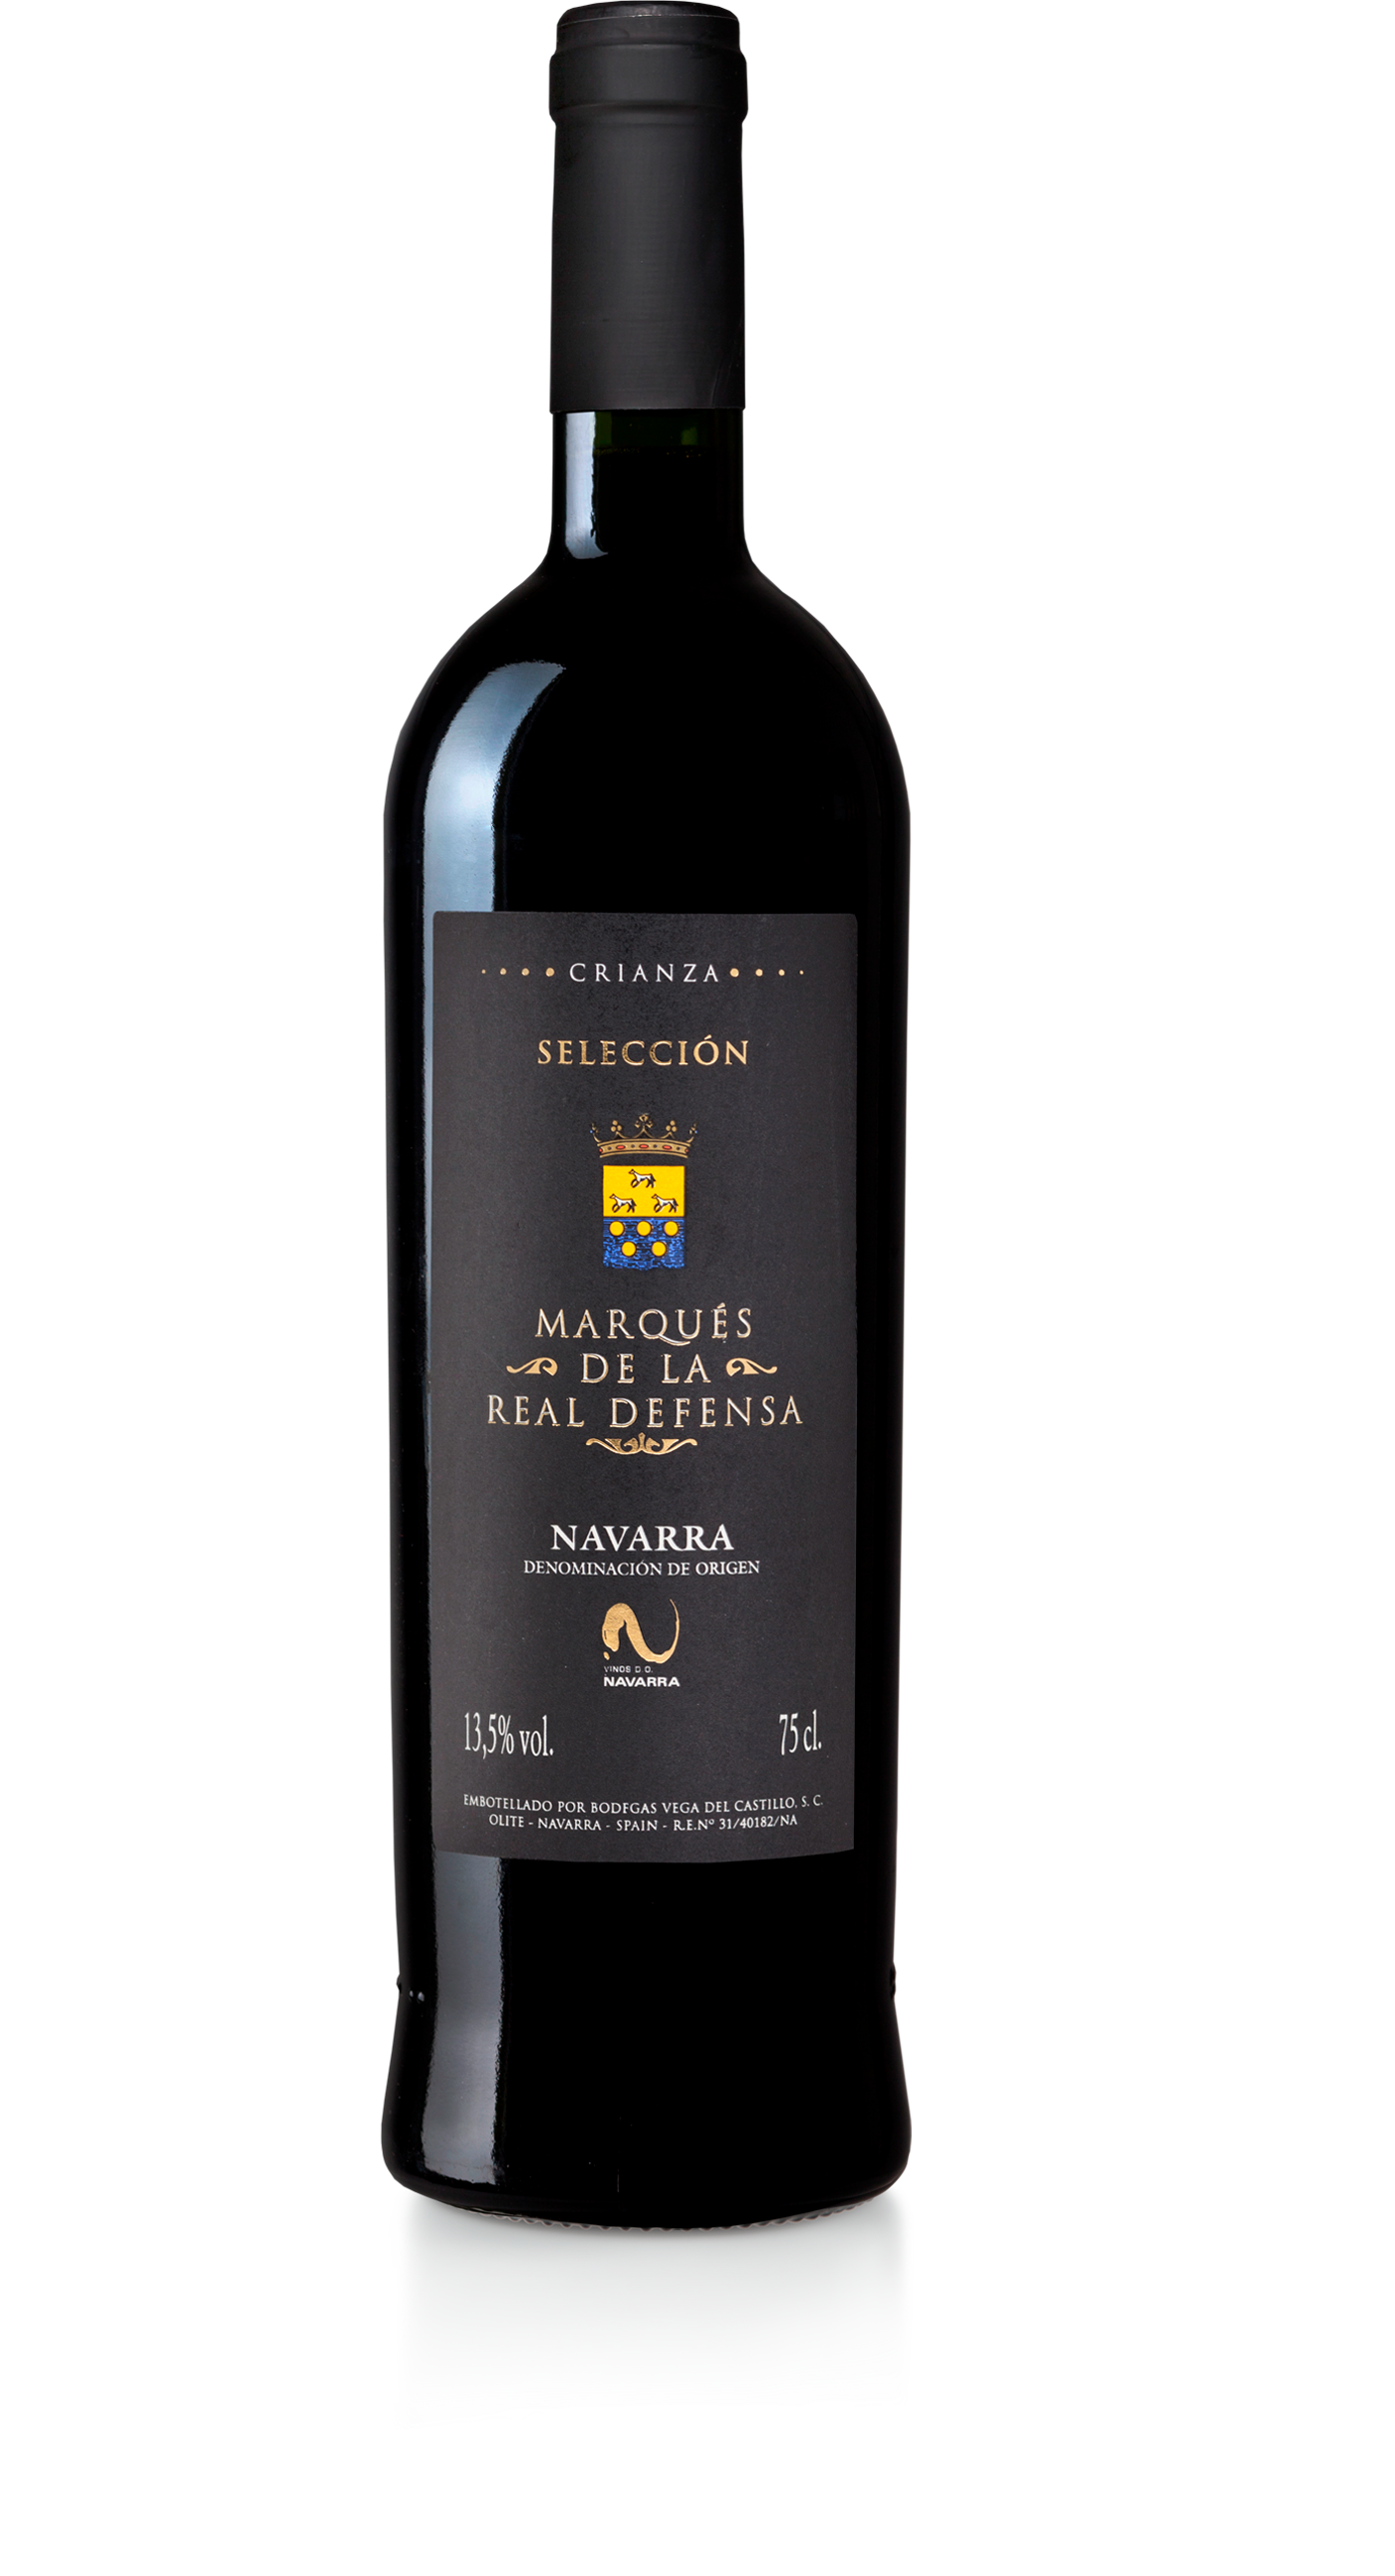 Marques de la real defensa crianza